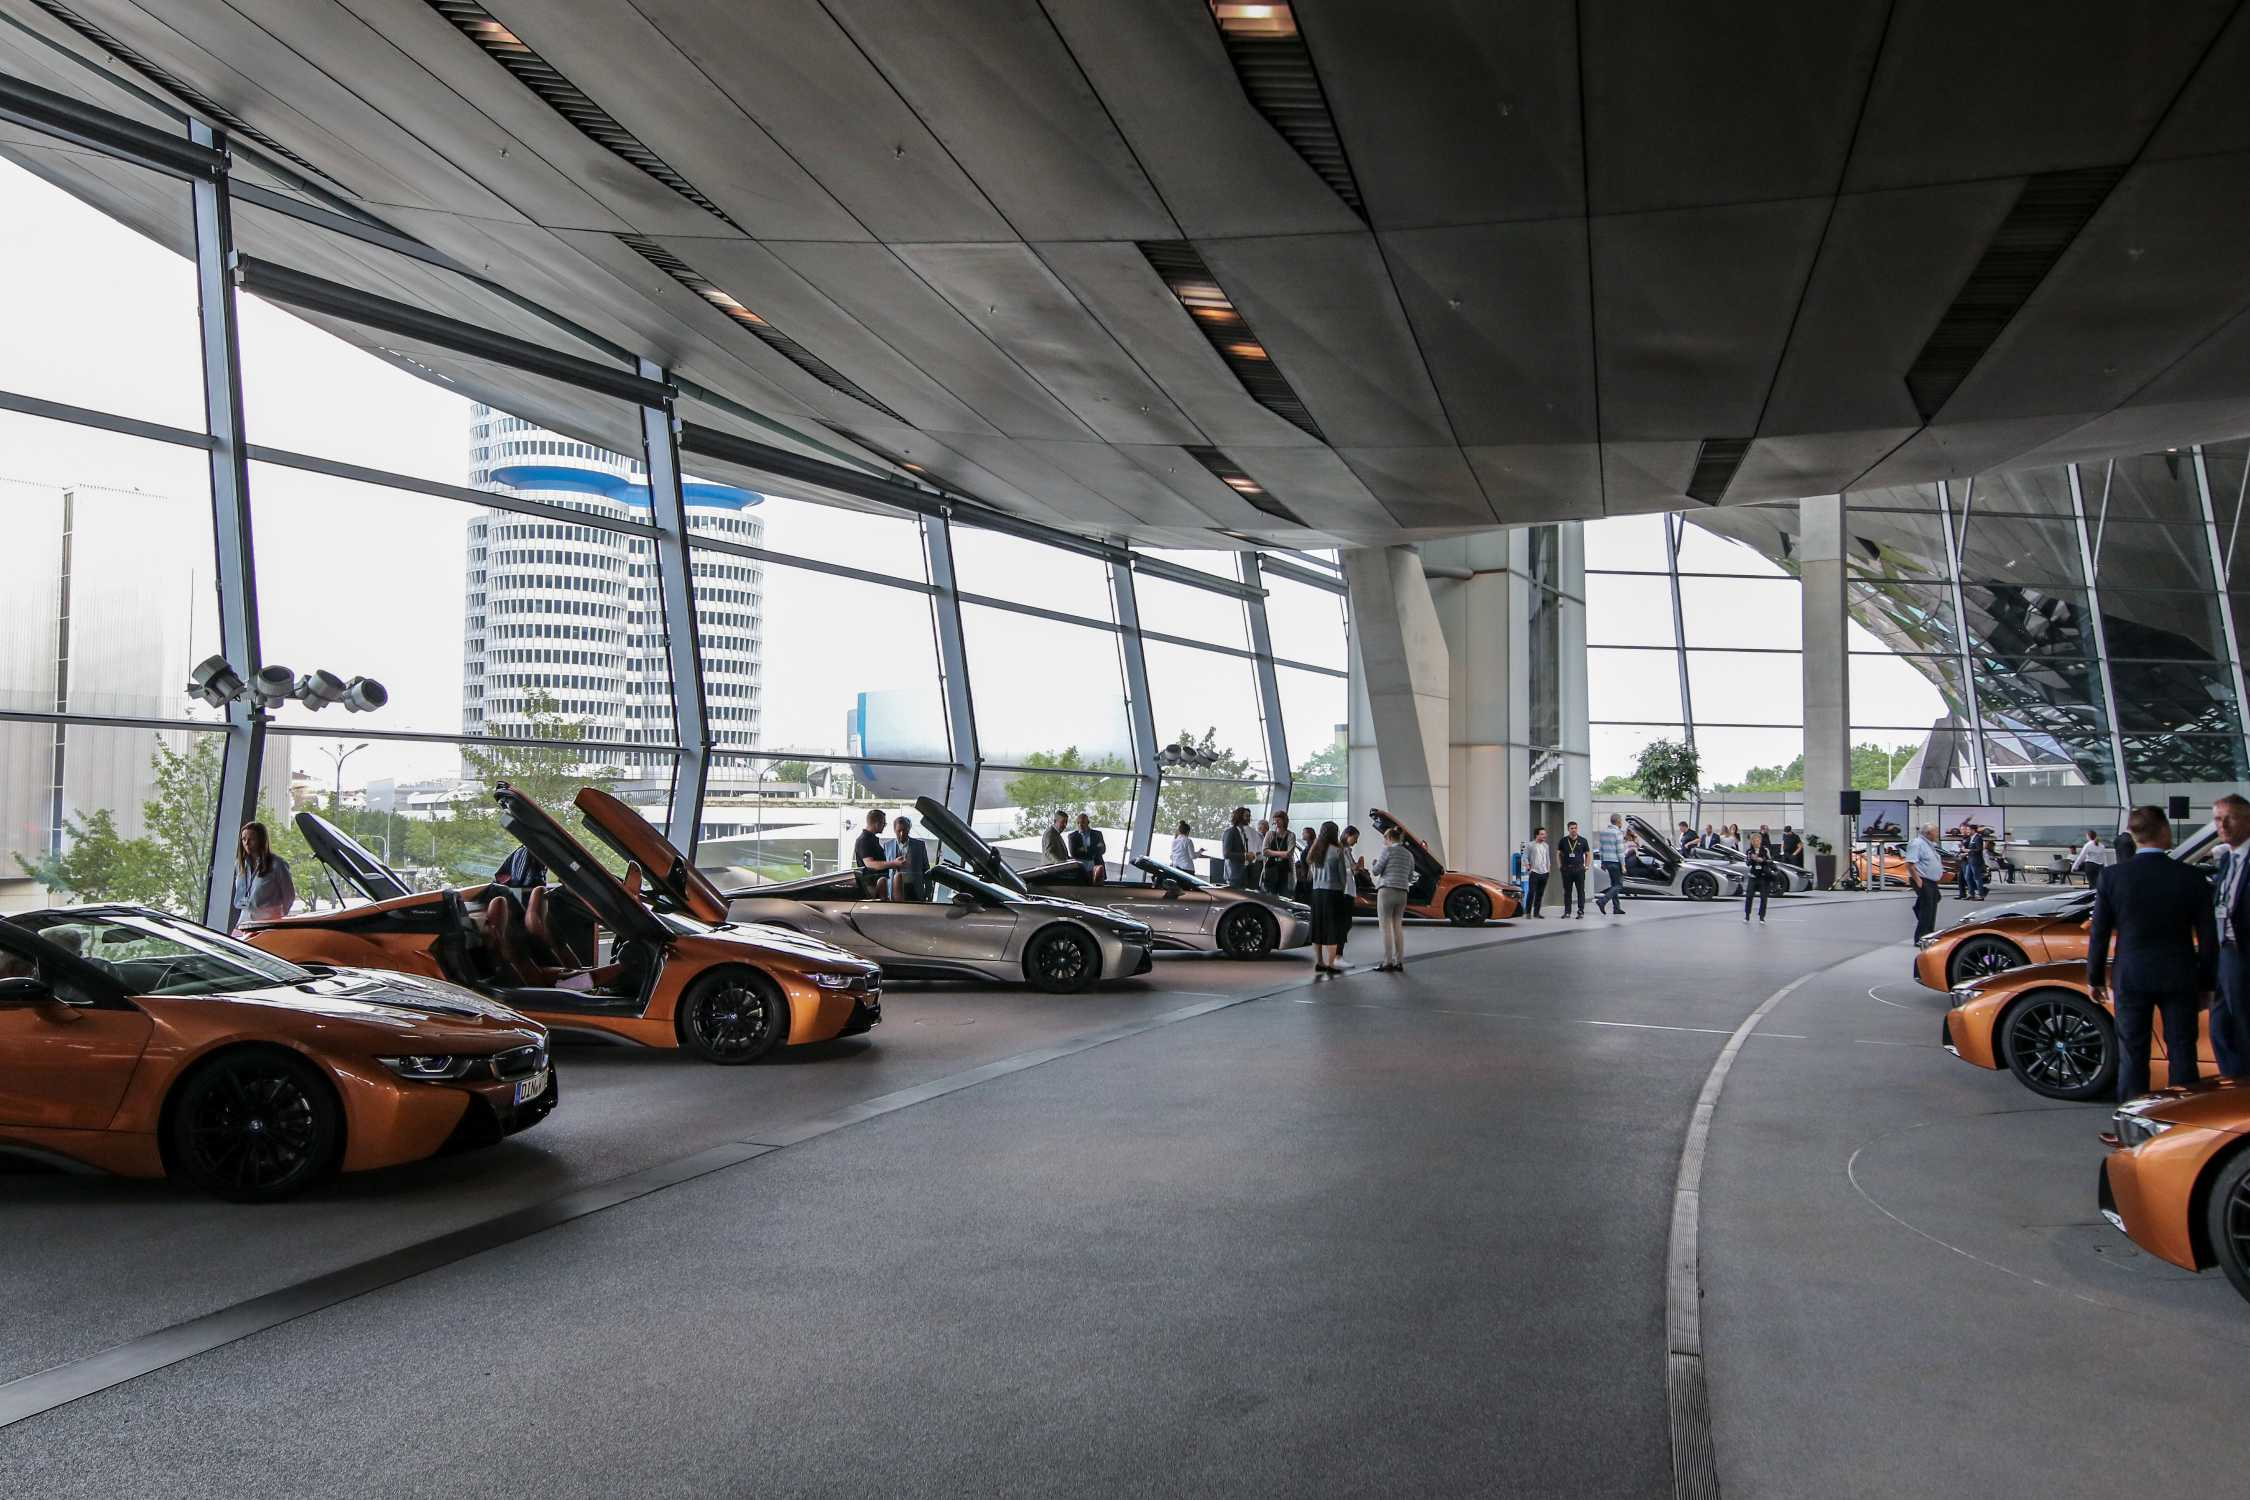 """Handover of 18 of the first BMW i8 Roadsters in the strictly limited """"First Edition"""" to the international BMW i8 Club at BMW Welt in Munich (05/2018)."""